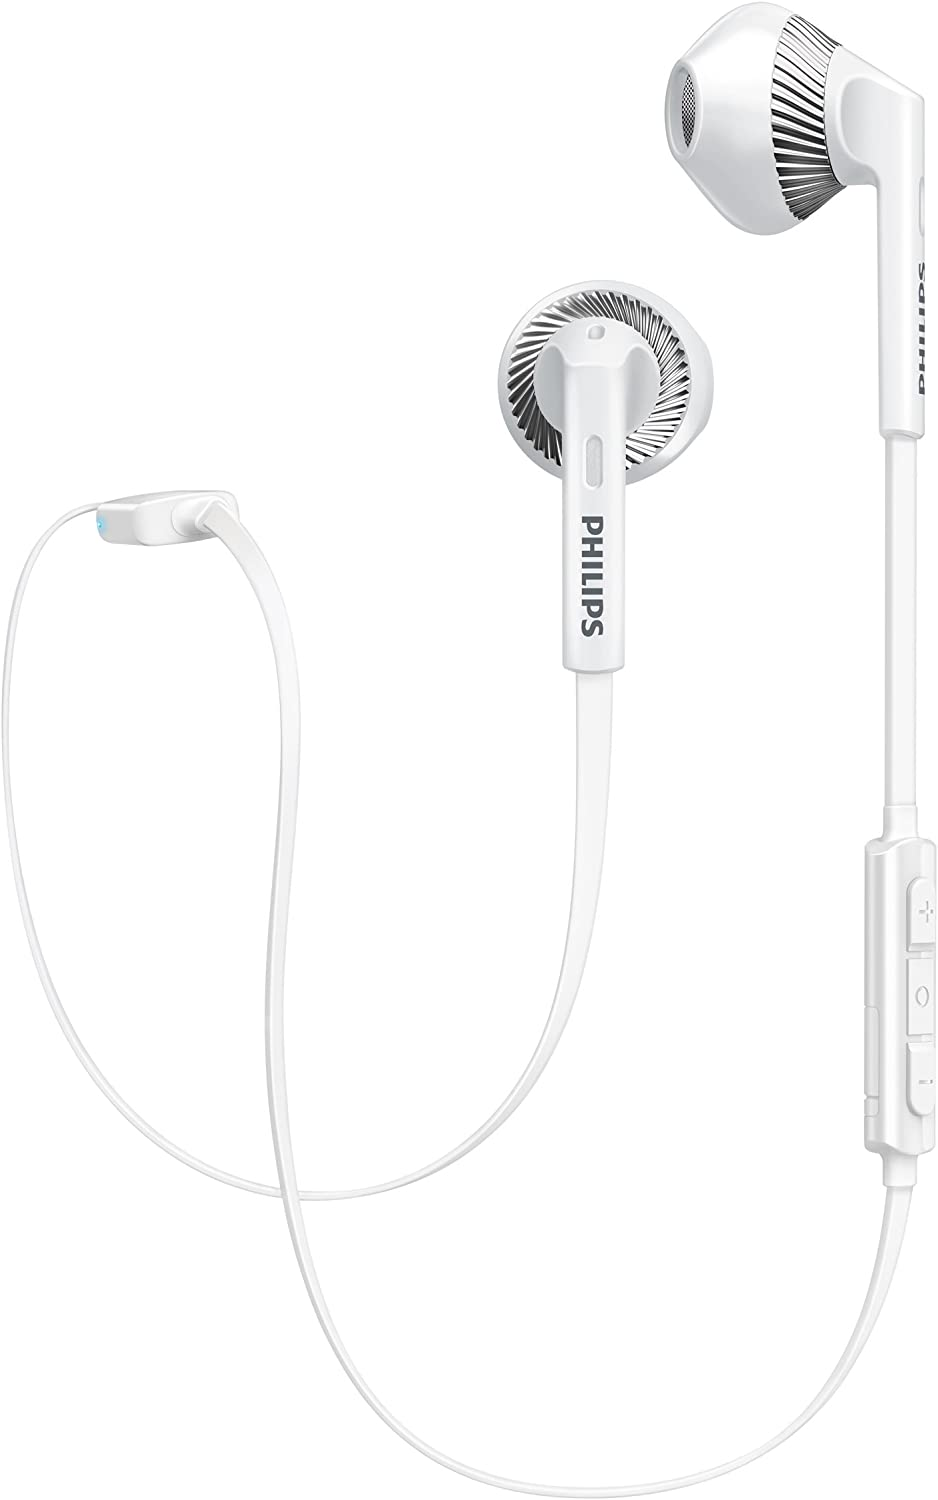 Philips Audio Shb 5250wt In Ear Bluetooth Kopfhörer Mit Elektronik